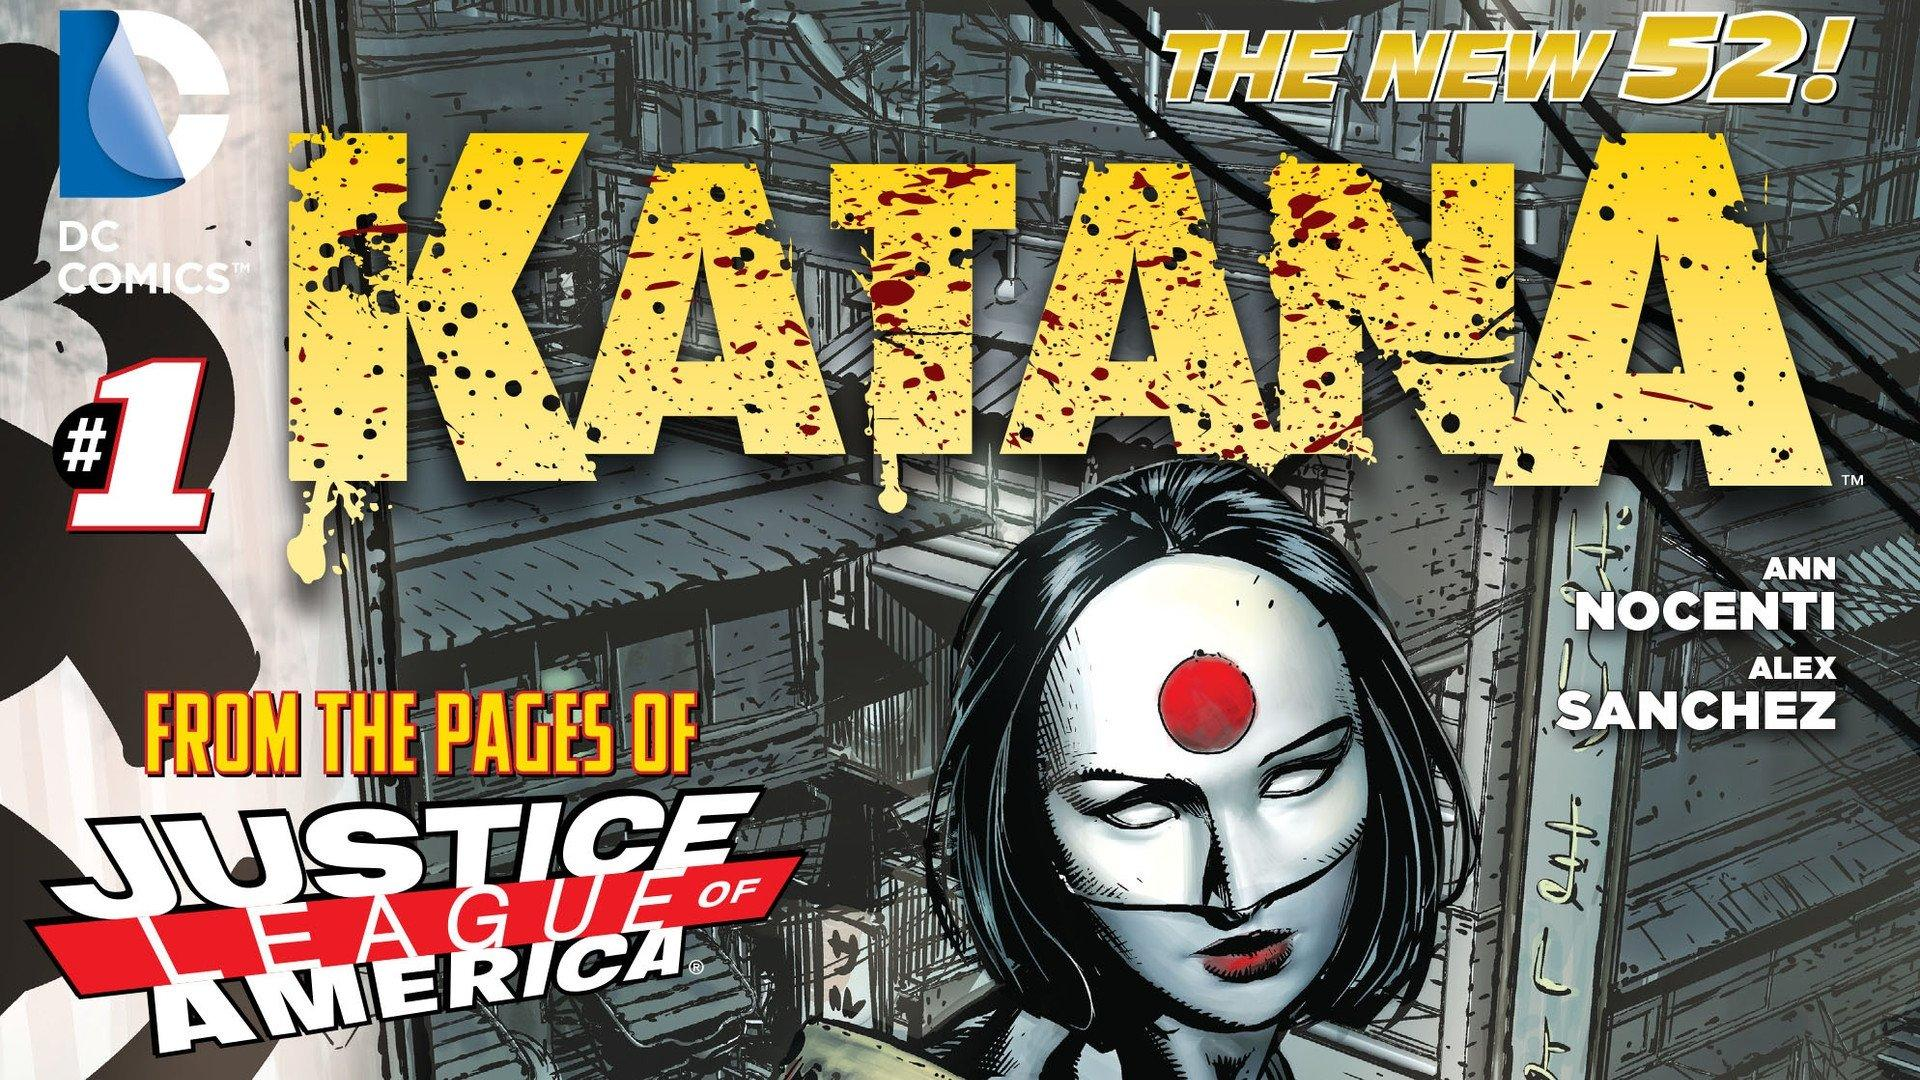 Katana wallpapers 1920x1080 Full HD